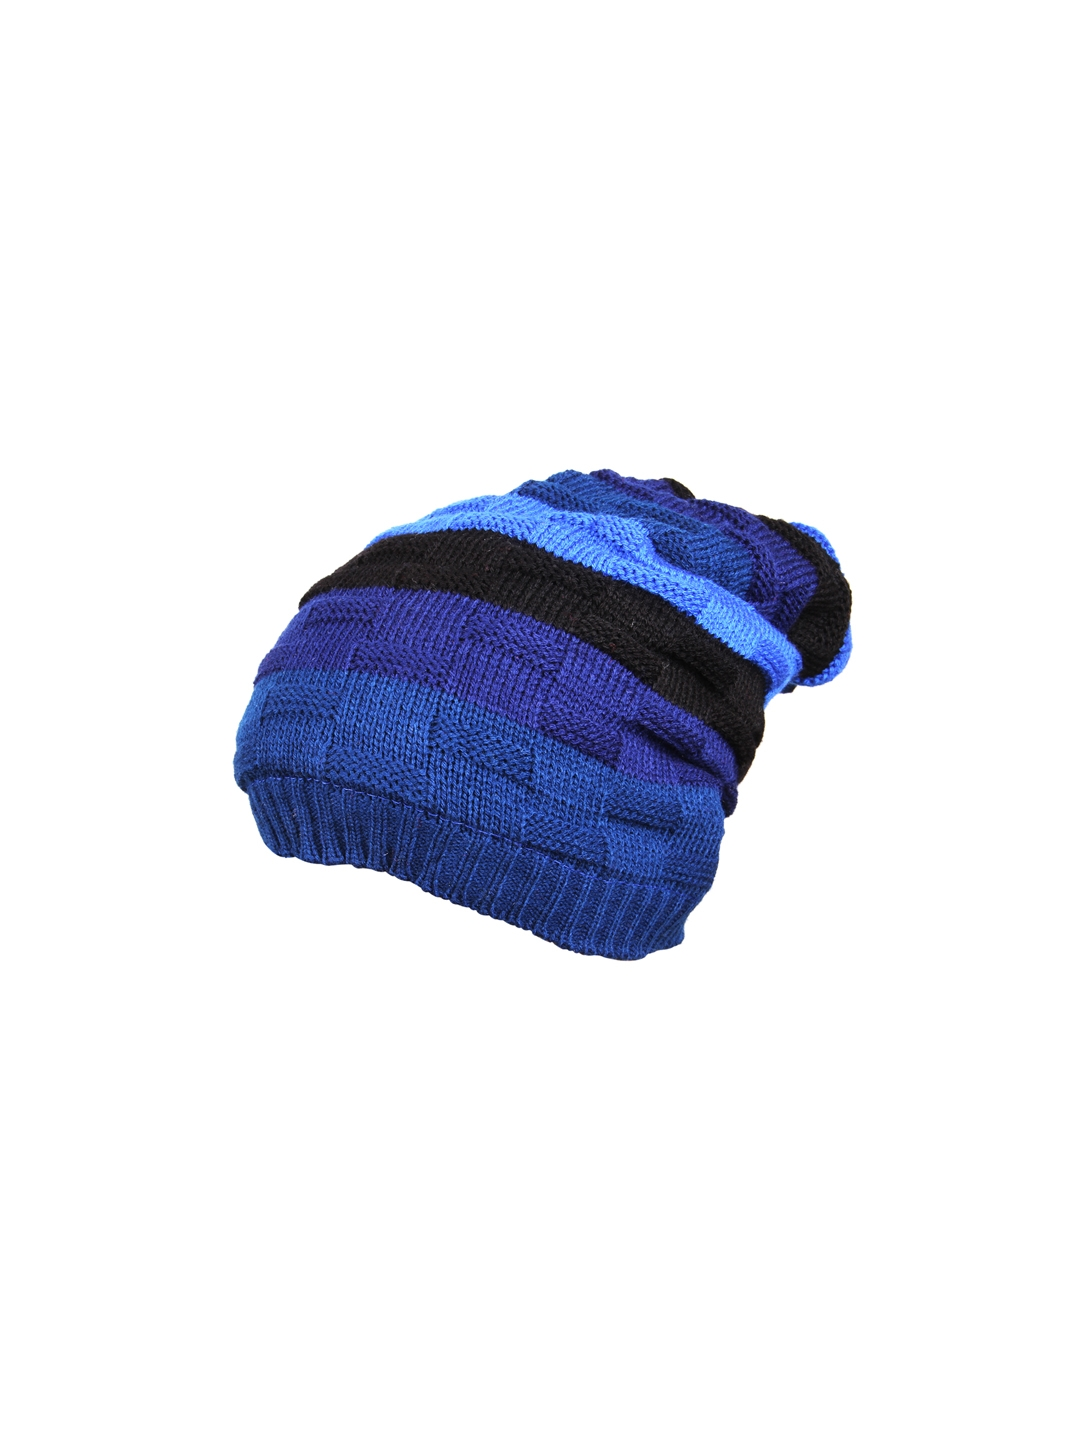 eb00a64eee3 Buy Knotyy Unisex Set Of 2 Beanies - Caps for Unisex 4378494